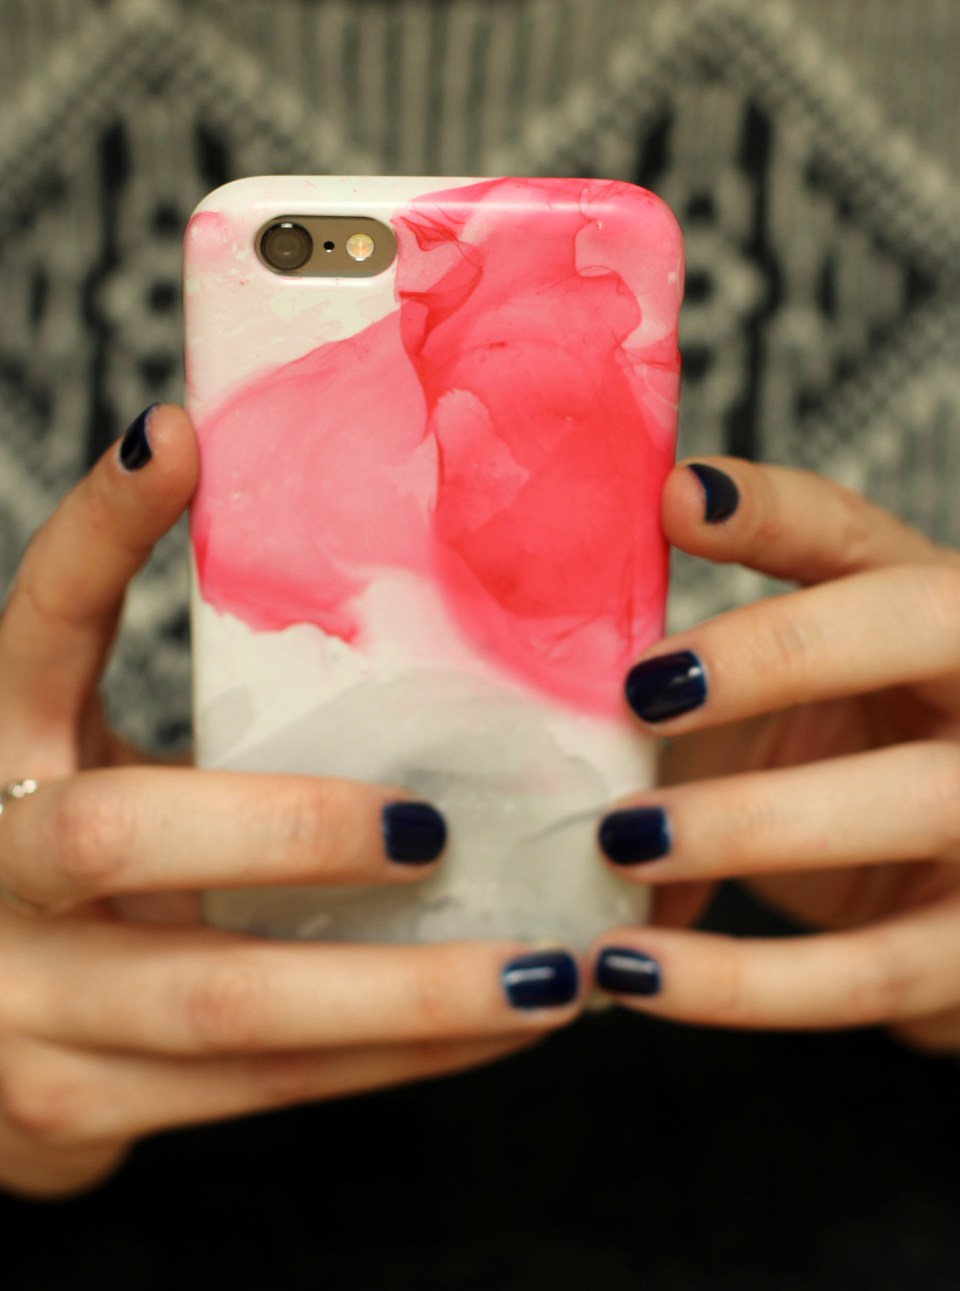 nail-varnish-marbled-phone-case-diy-02